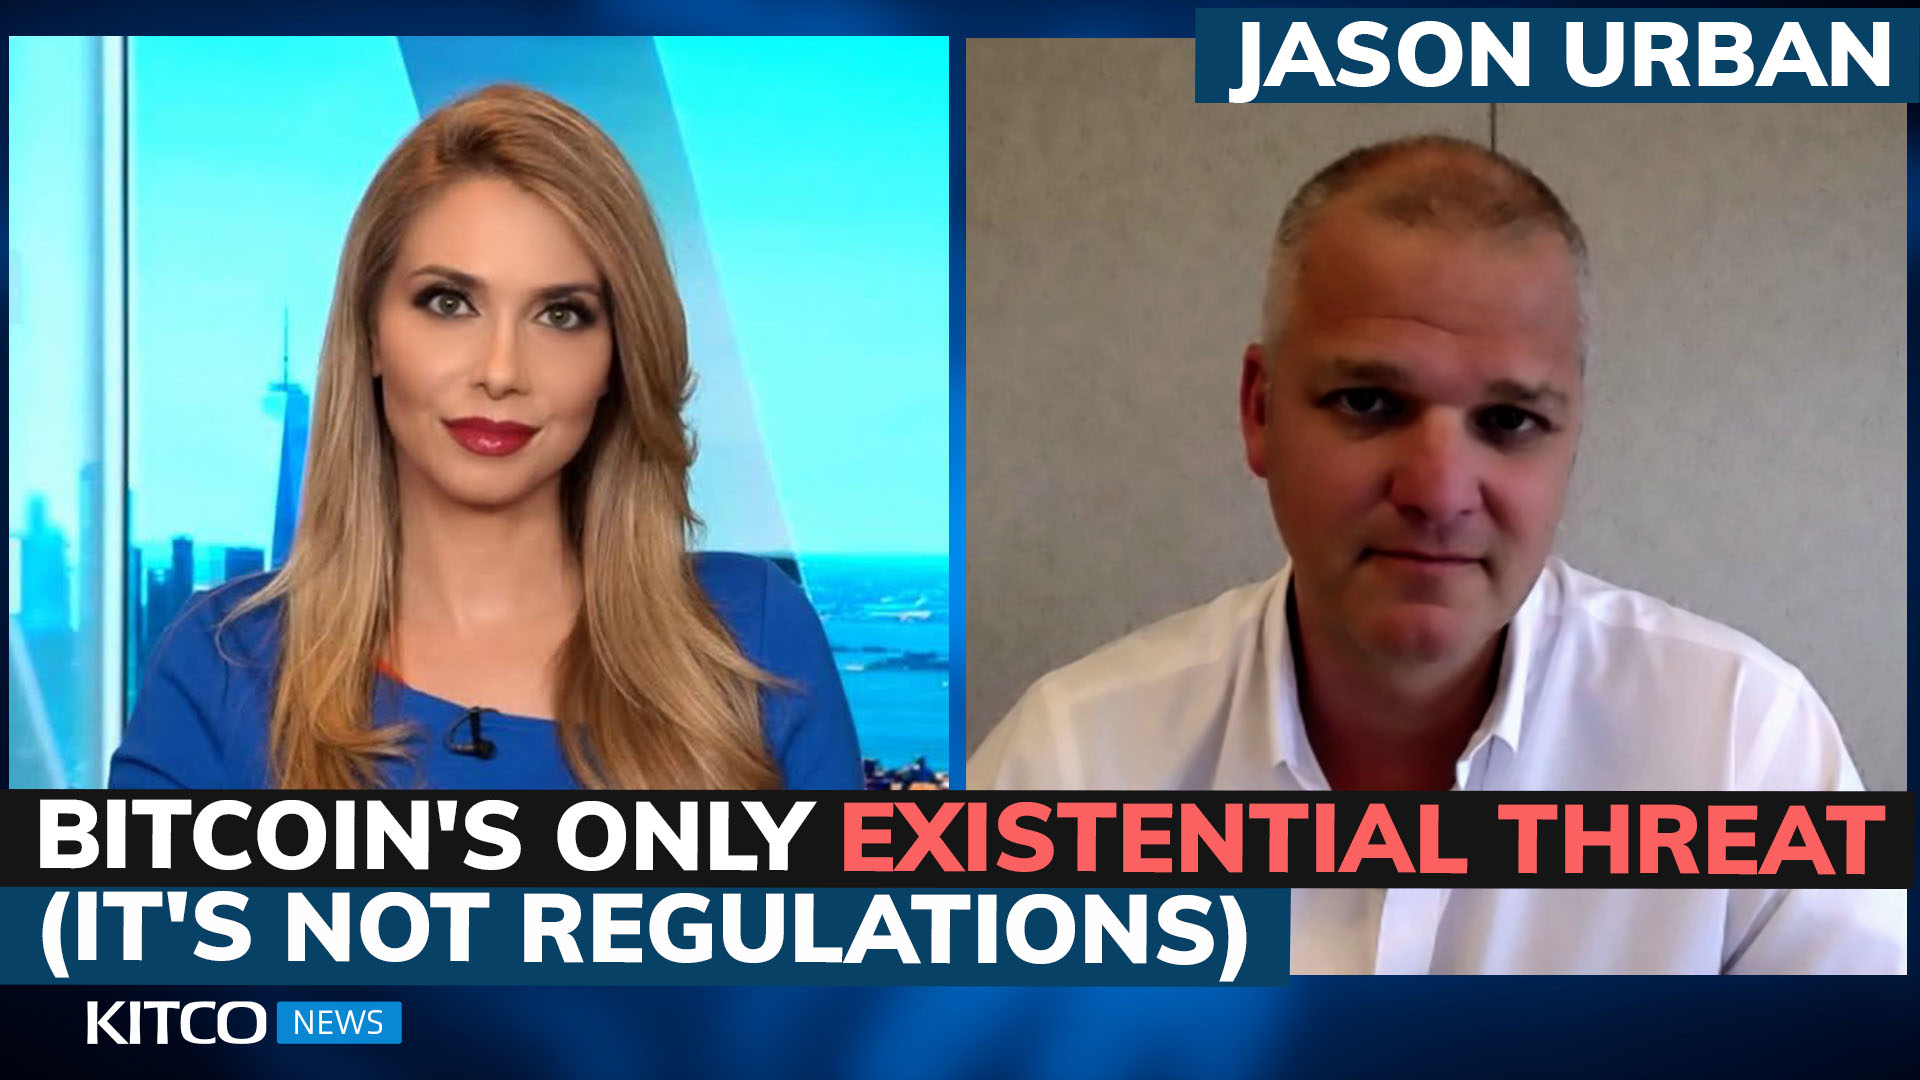 Bitcoin price to set new record by year-end, institutional money will flood in once this happens - Jason Urban